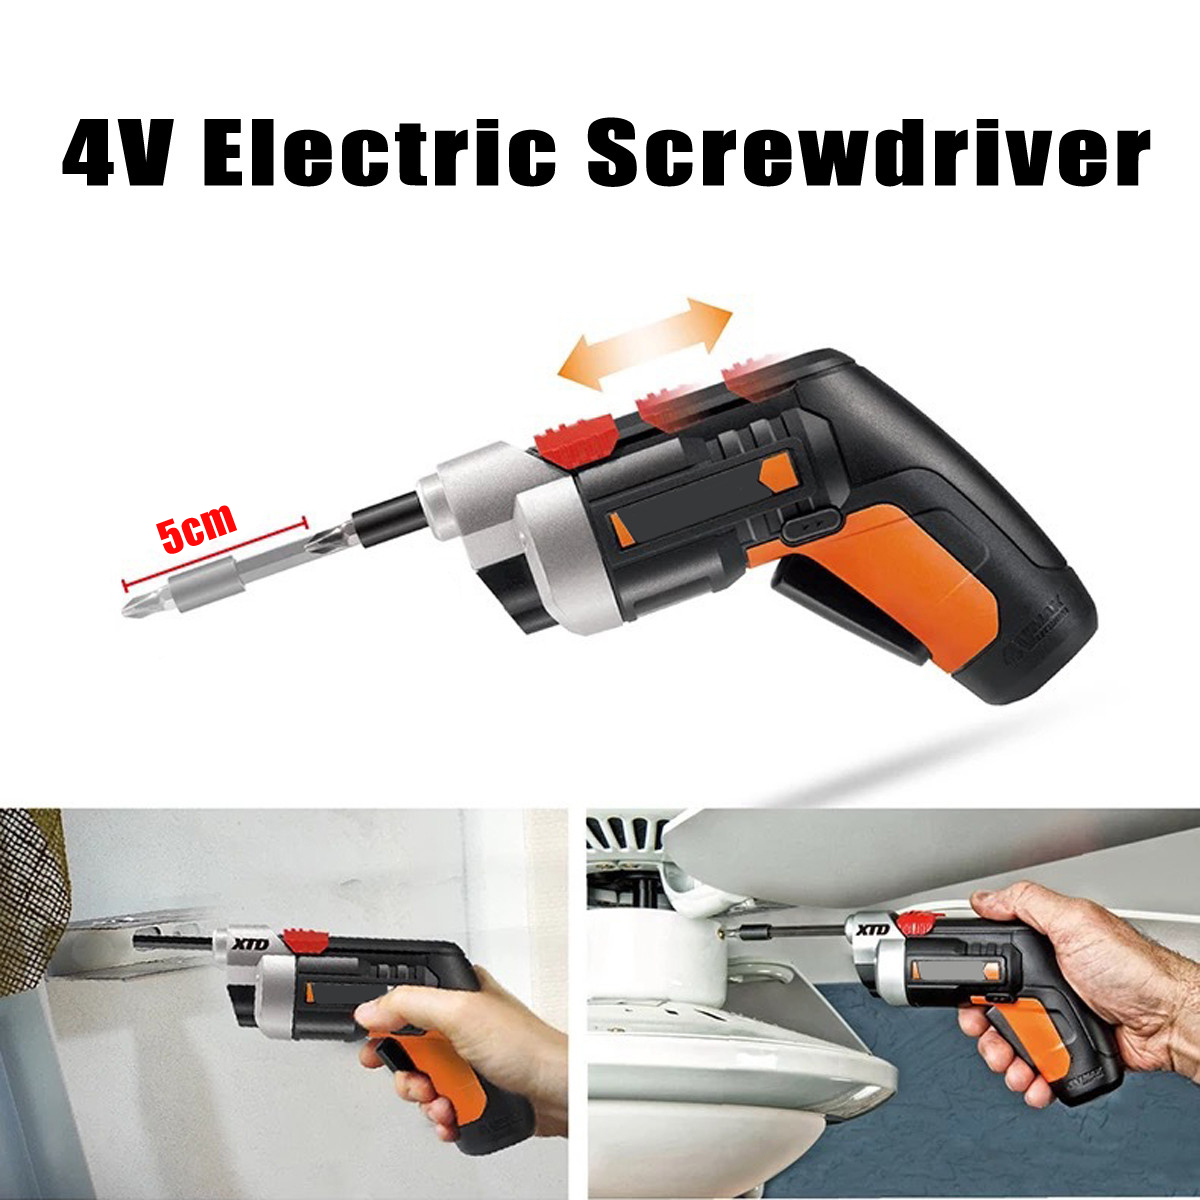 4V 1500mAh Electric Screwdriver Lithium Battery Electric Drill WX252 Rechargeable 254 Electric Tools Household Power Tool